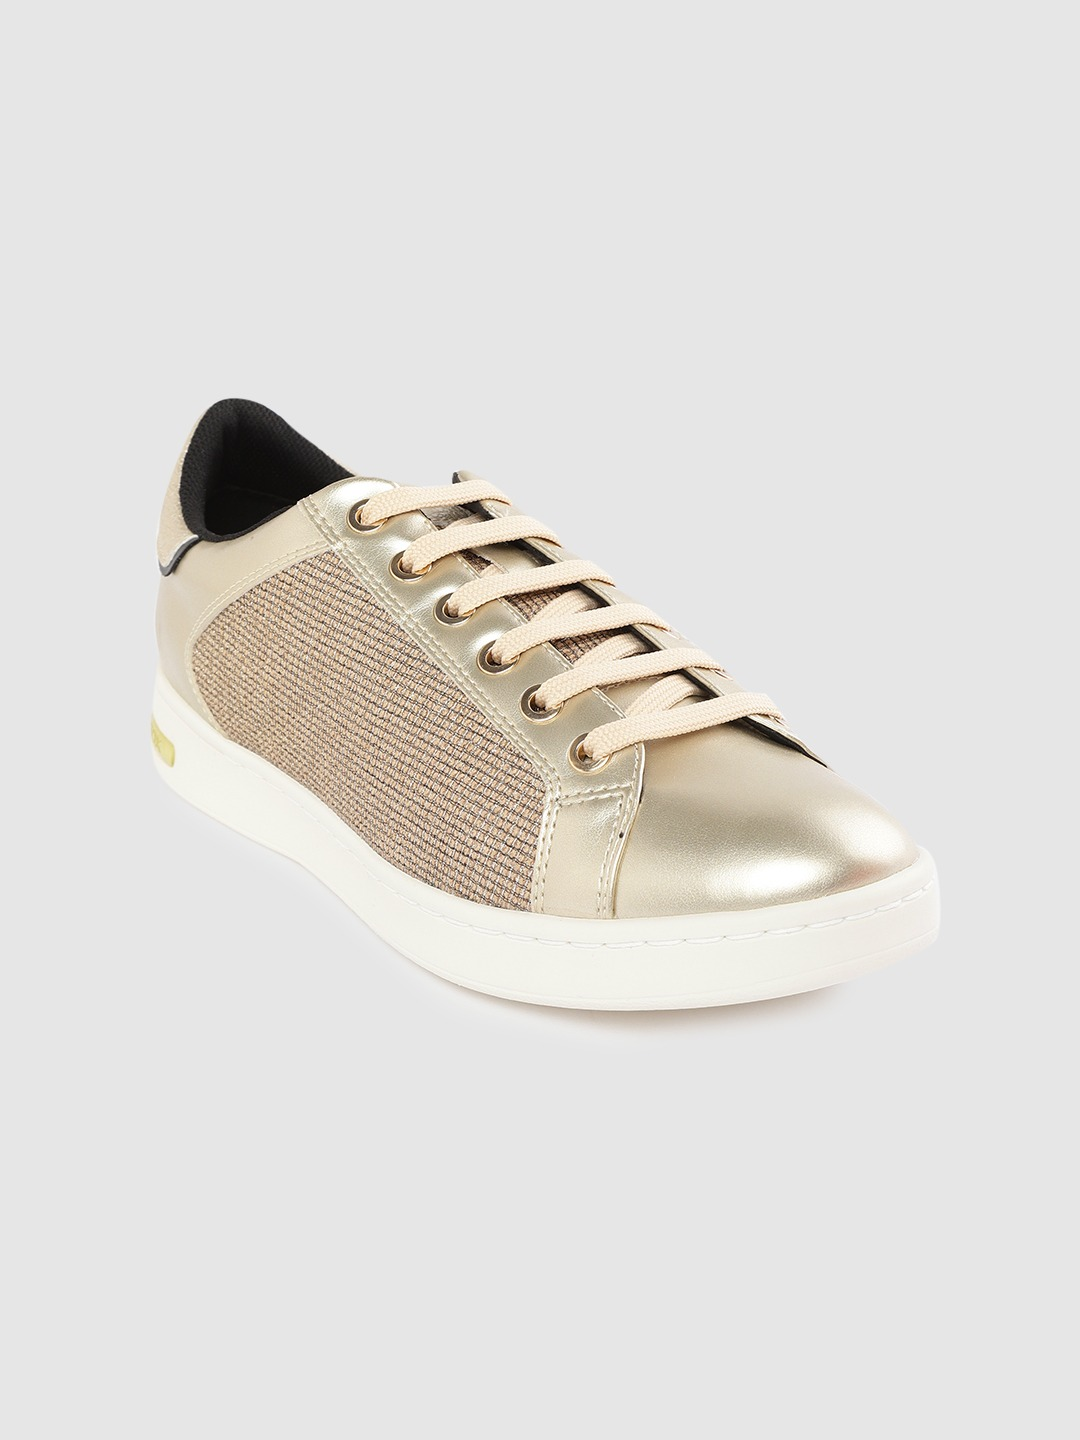 Gold-Toned & Beige Woven Design Sneakers